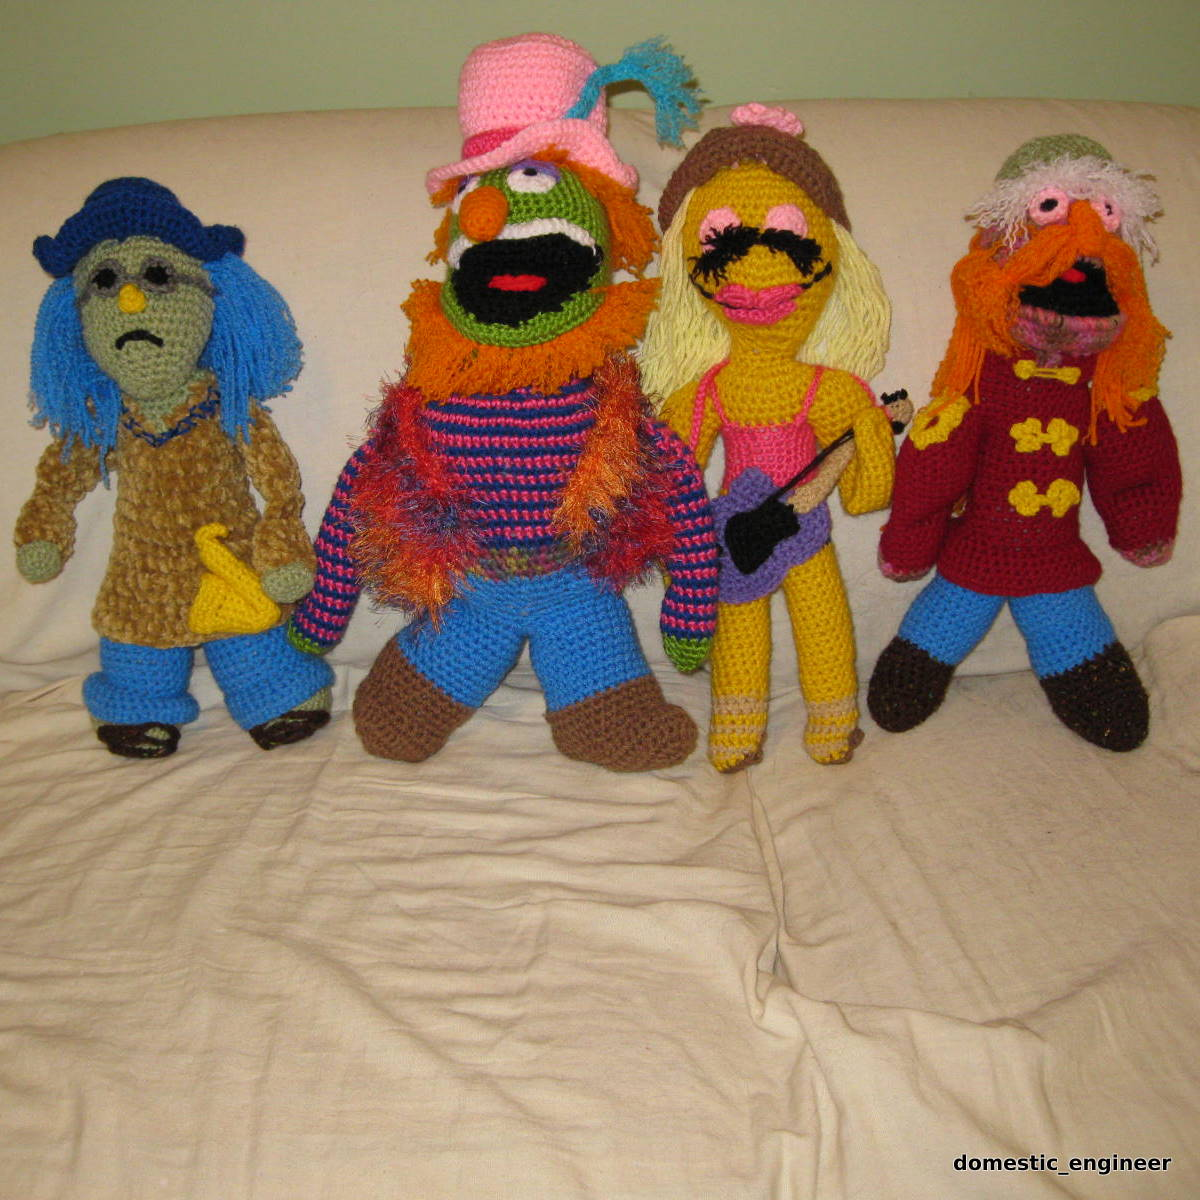 A Crocheted Tribute to Dr. Teeth and the Electric Mayhem